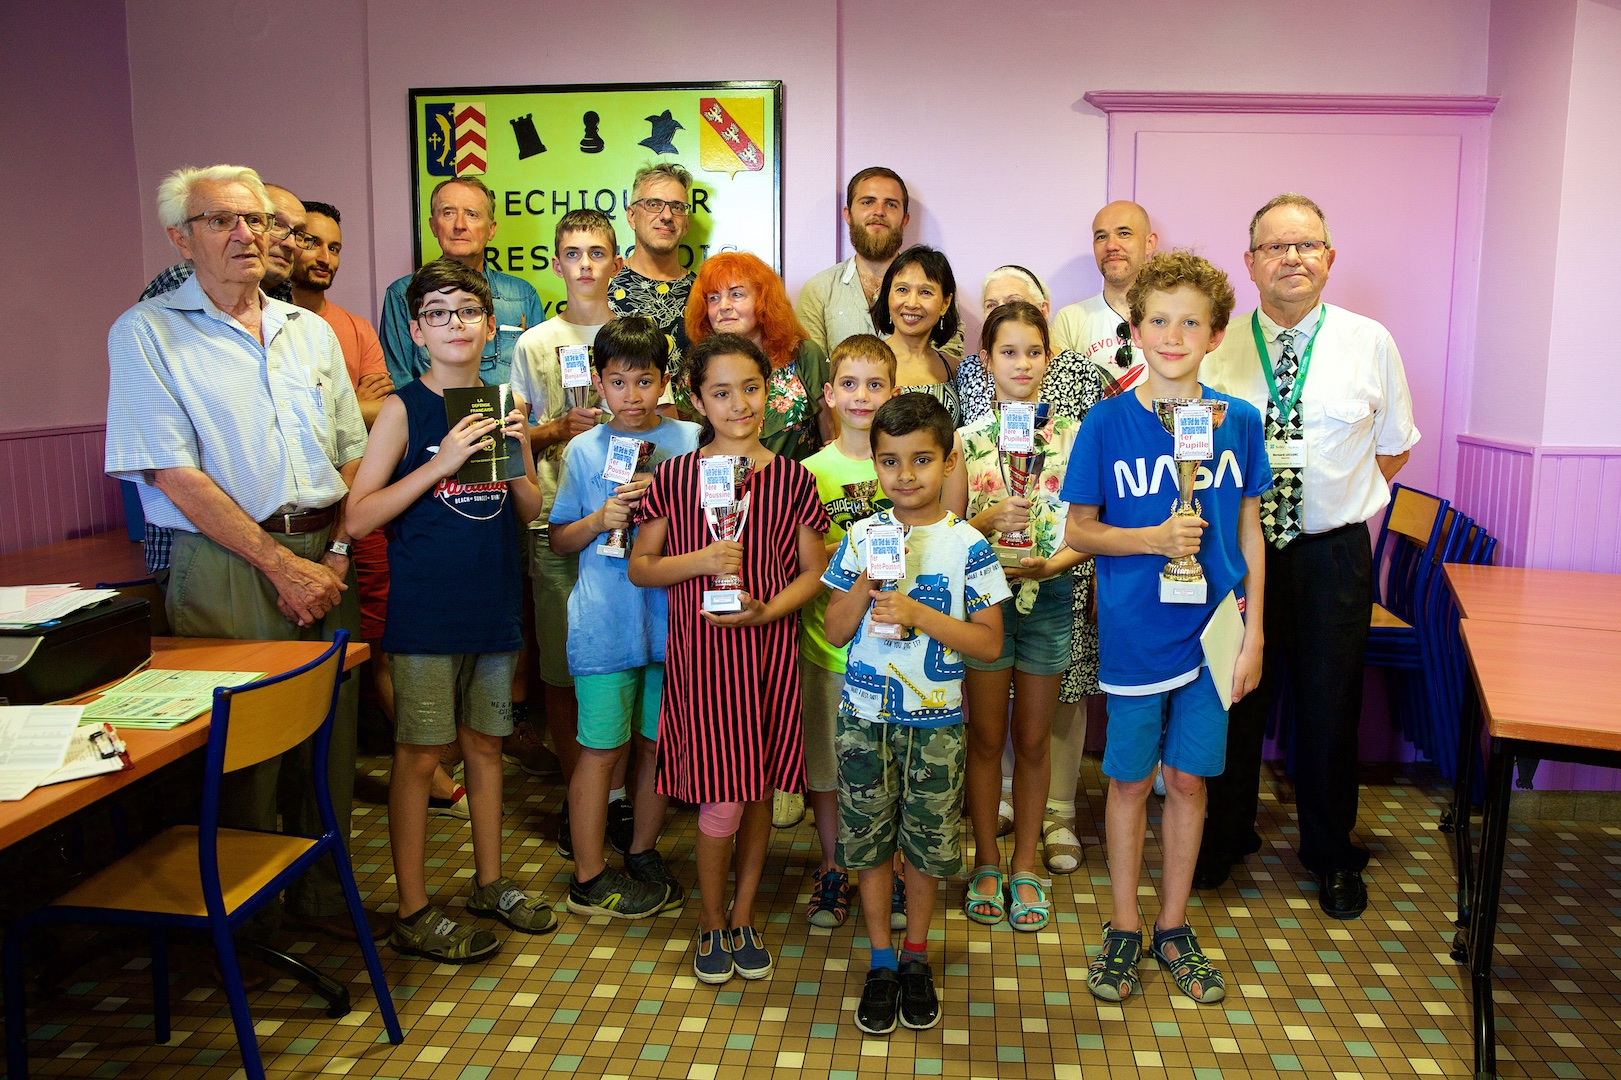 Chess results - 18th Rapid'Echecs Pay Haut Tressange - 6th July 2019